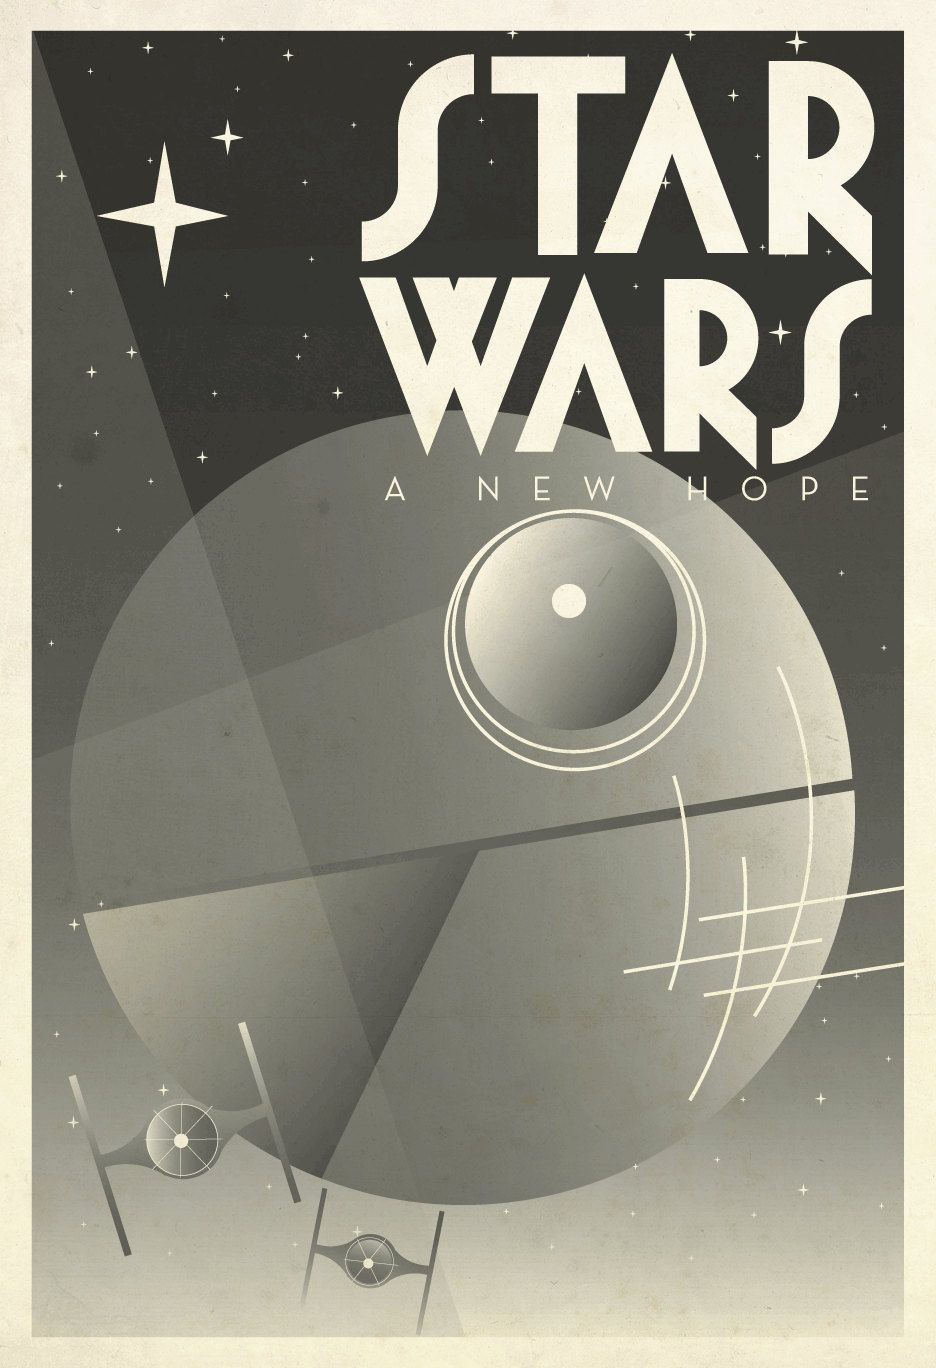 Star Wars Film Poster Art Deco Modern Art Print 13 X 19 30 00 Via Etsy Star Wars Canvas Art Star Wars Film Star Wars Art